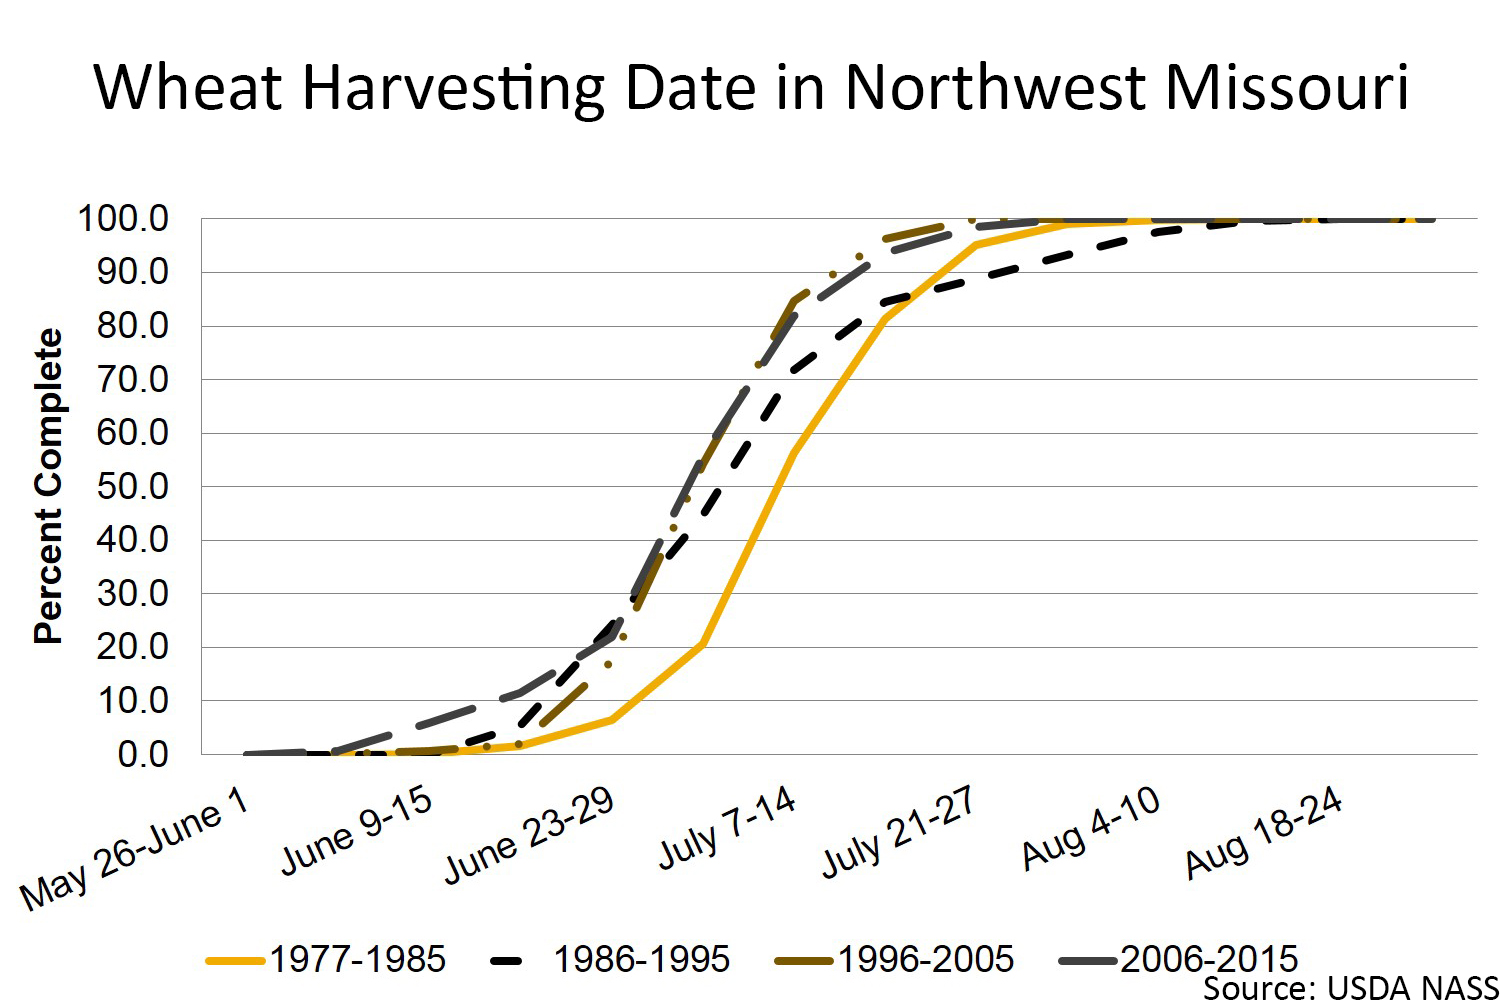 Wheat harvesting date in northwest Missouri chart